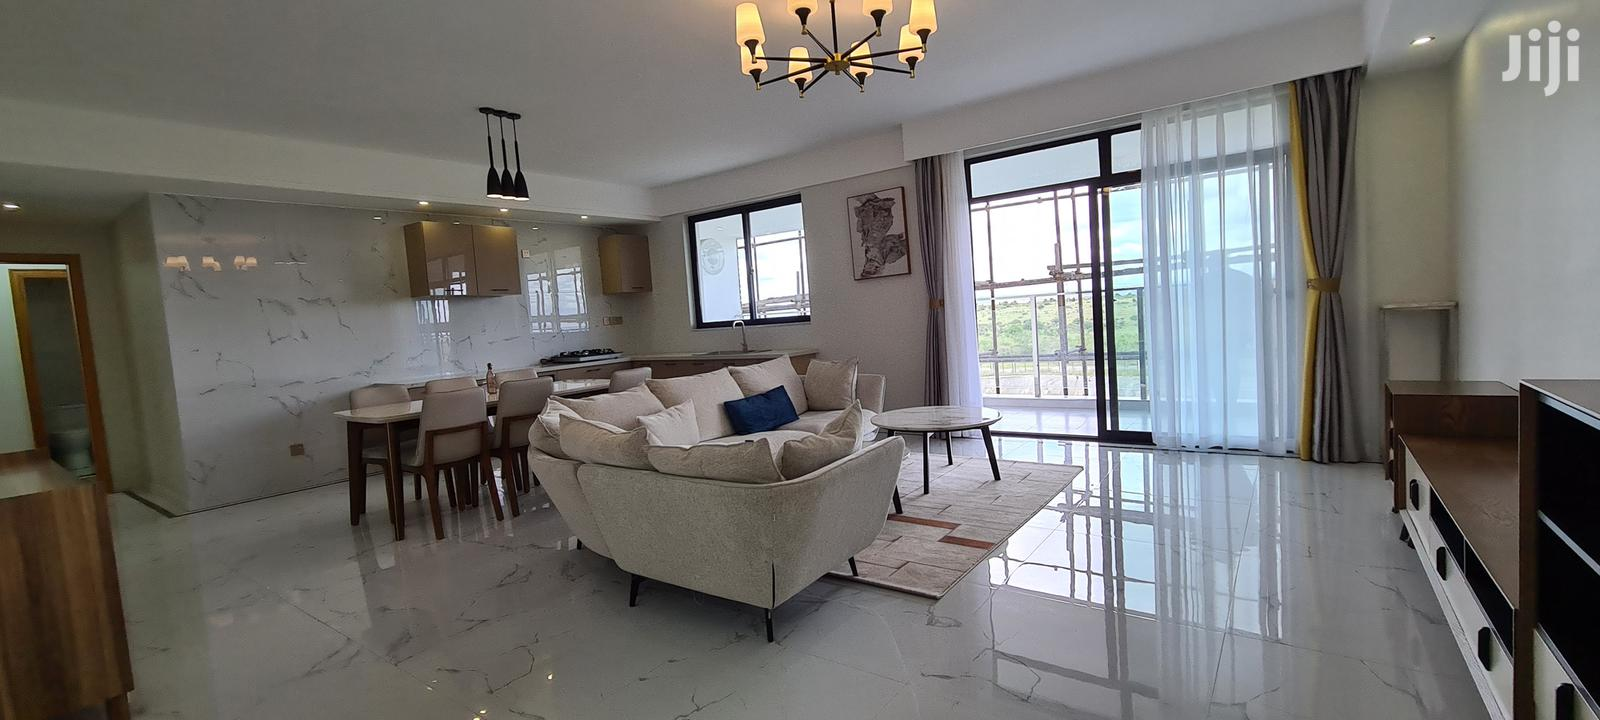 Flat For Sale | Houses & Apartments For Sale for sale in Syokimau/Mulolongo, Machakos, Kenya